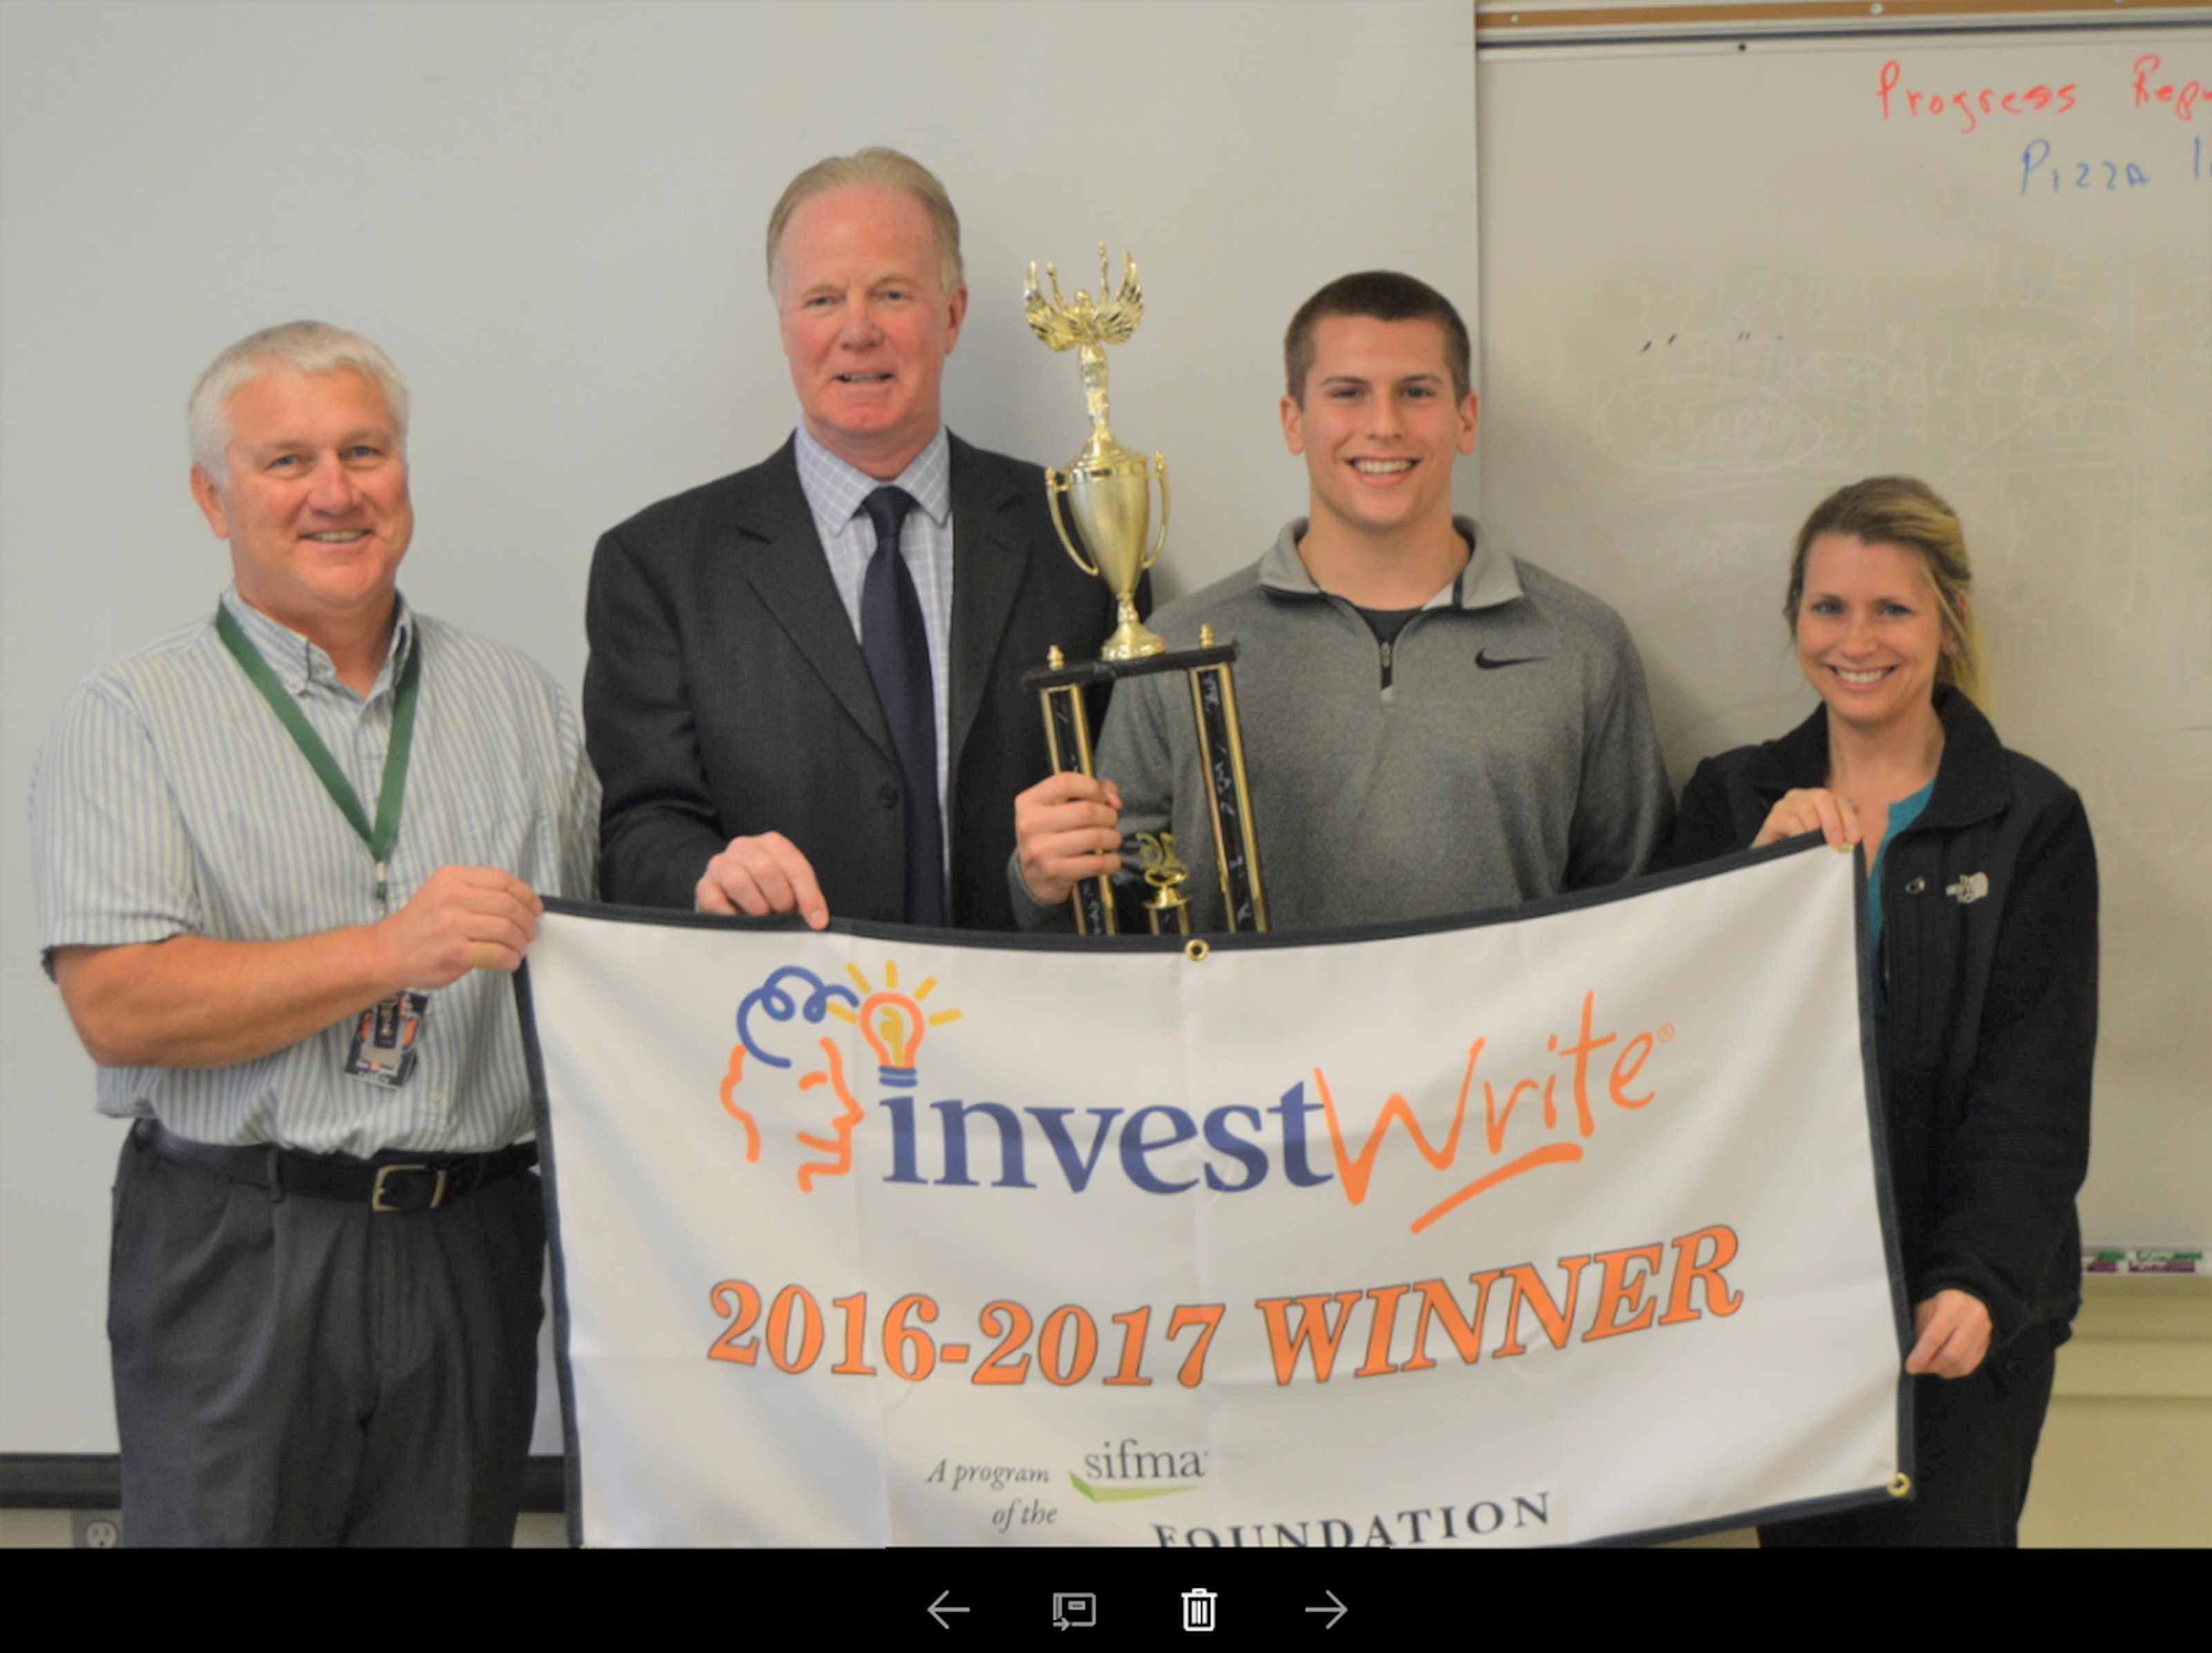 Austin Dutremble, a senior at Biddeford Regional Center of Technology and Biddeford High School, was named the state winner of the SIFMA Foundation's Fall 2016 InvestWrite® essay competition. From left are BRCOT Instructor Ken Crepeau, ME/NH Coordinator for InvestWrite Jim Ford, BHS Senior Austin Dutremble and his mother Tracy Dutremble. SUBMITTED PHOTO